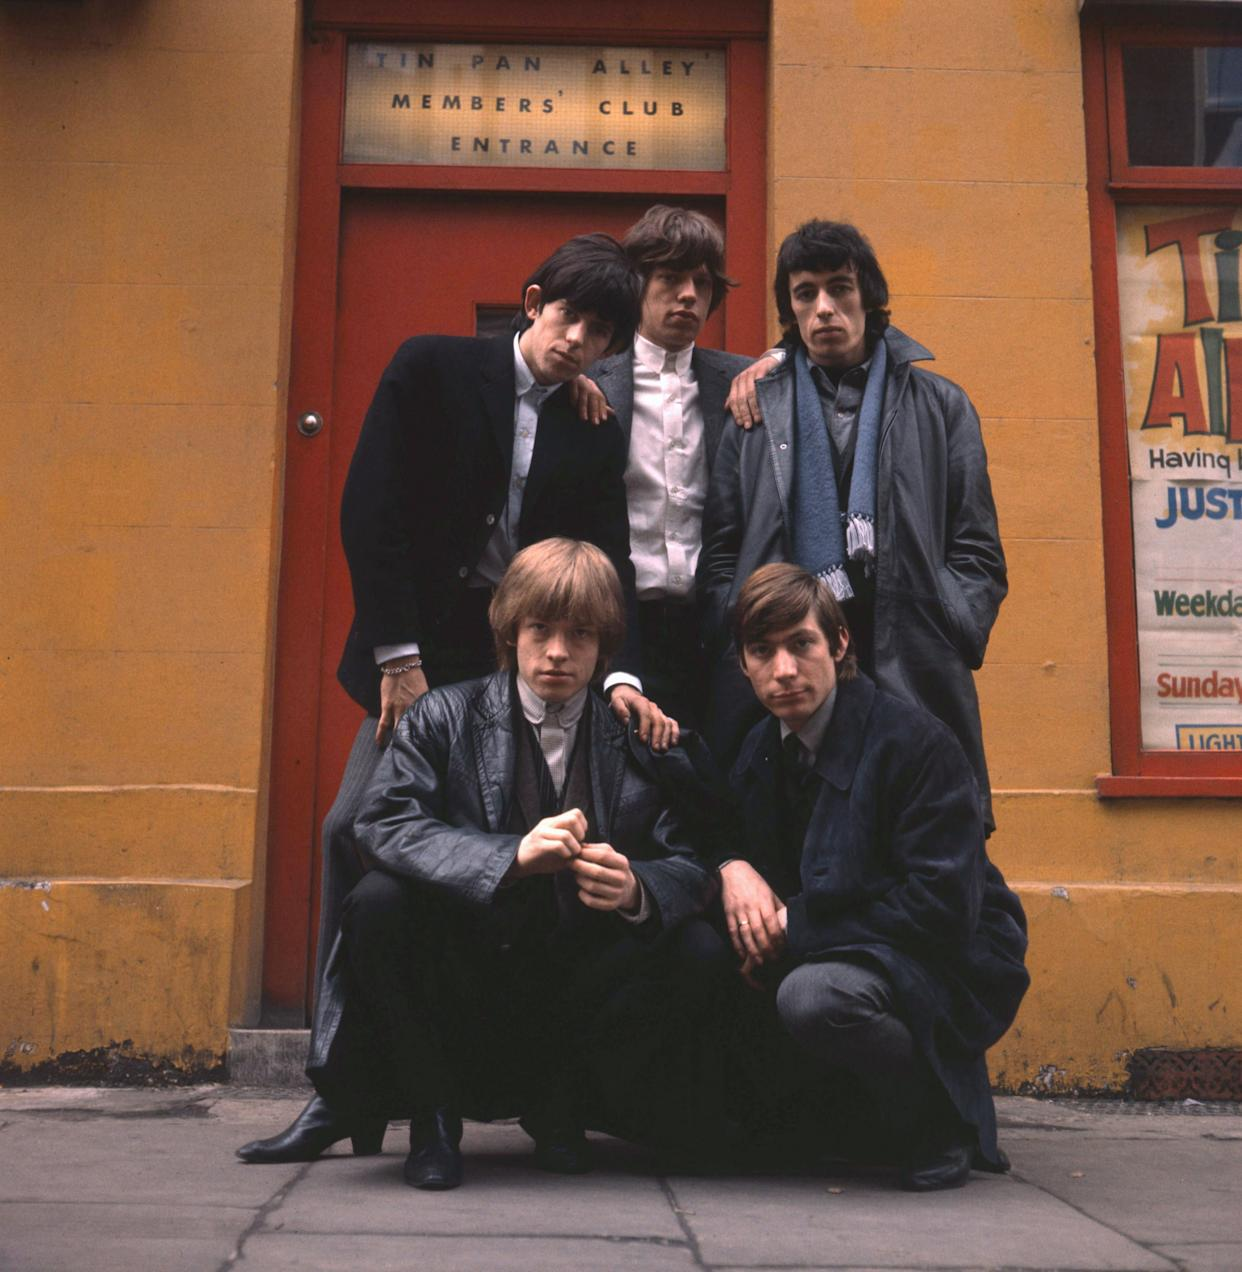 The Rolling Stones pose outside the Tin Pan Alley Club in London, early 1964. Clockwise from top left, Keith Richards, Mick Jagger, Bill Wyman, Charlie Watts and Brian Jones (1942 - 1969). (Photo by Terry O'Neill/Hulton Archive/Getty Images)